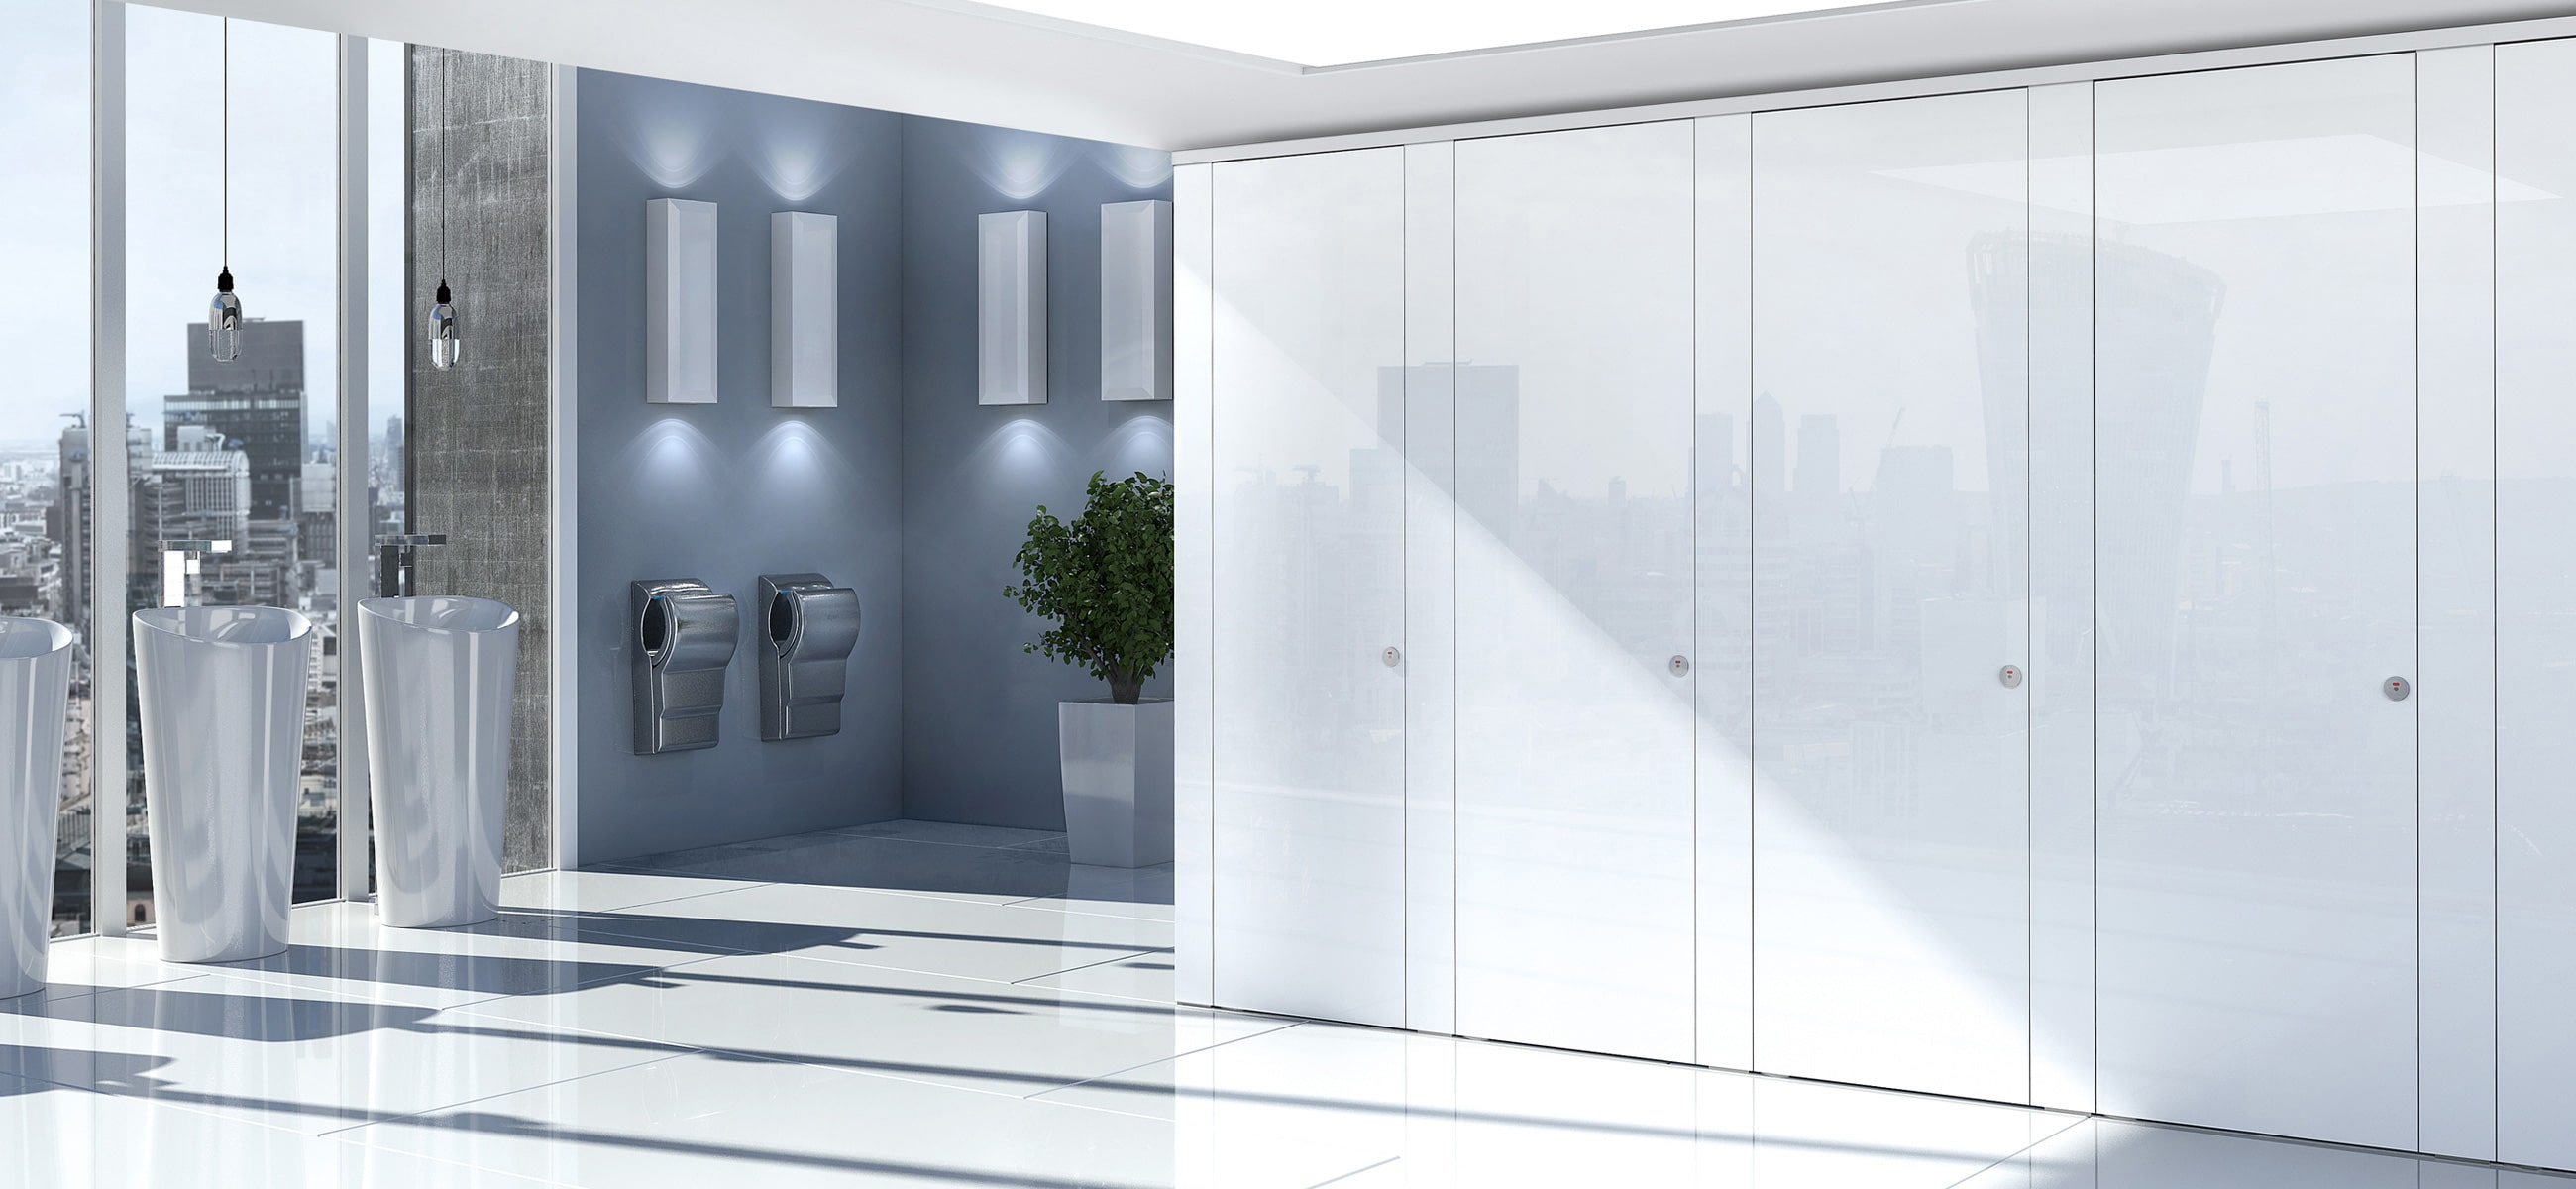 Sylan Commercial Washrooms in White Glass